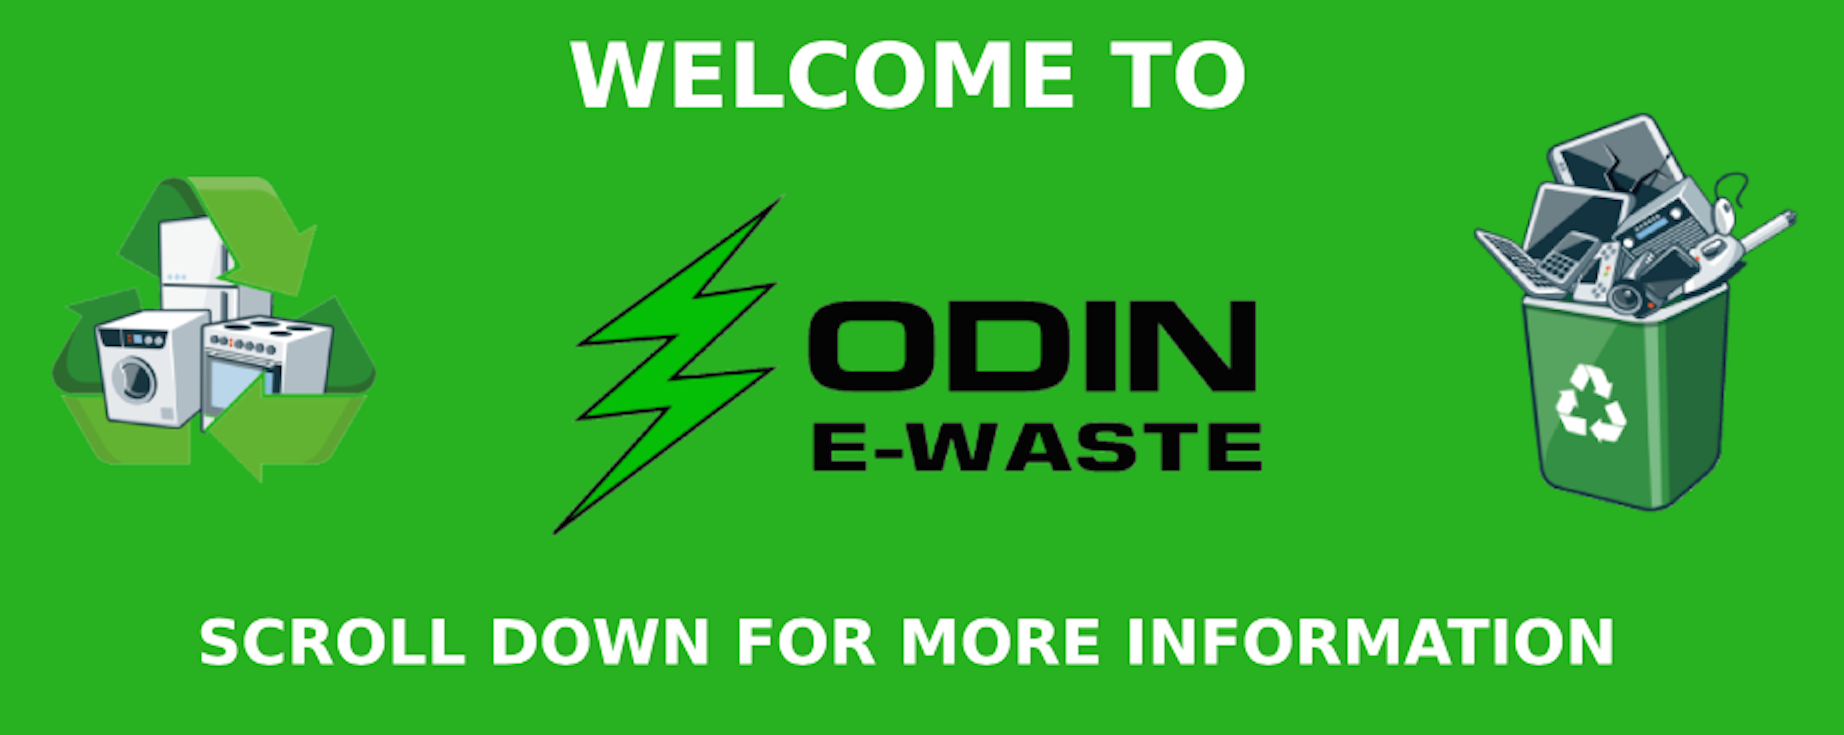 Welcome To Odin E-Waste